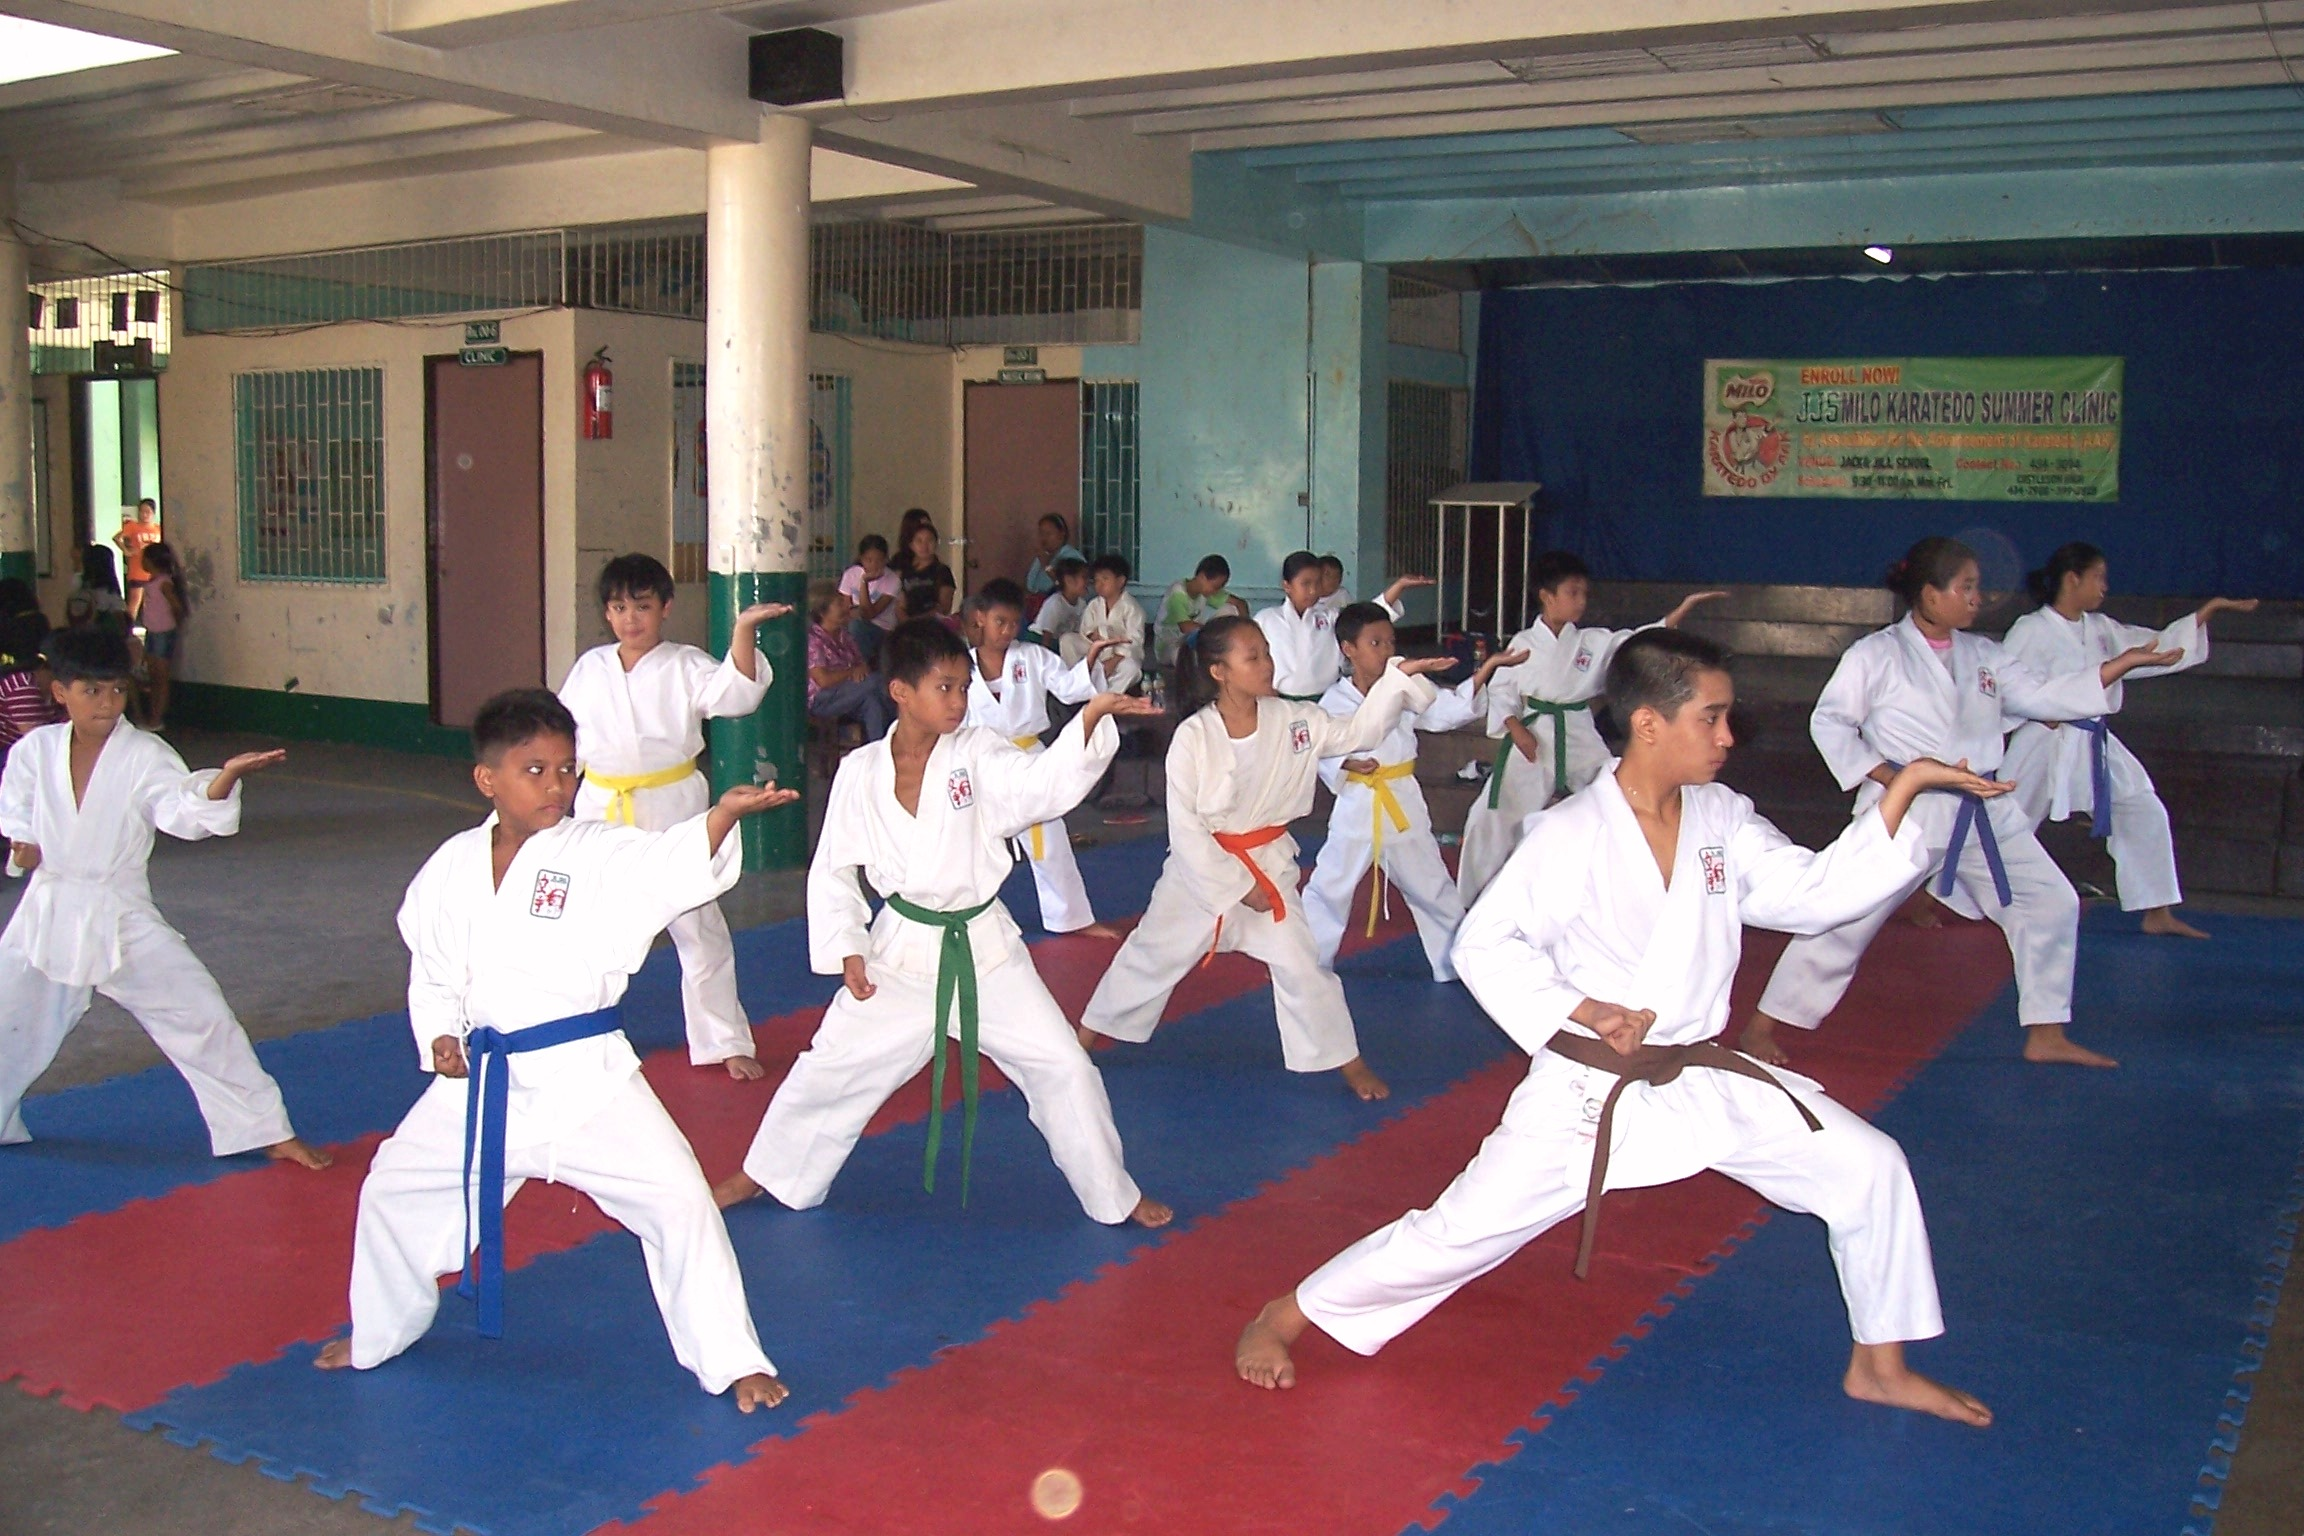 Karate Classes For Kids In New Orleans